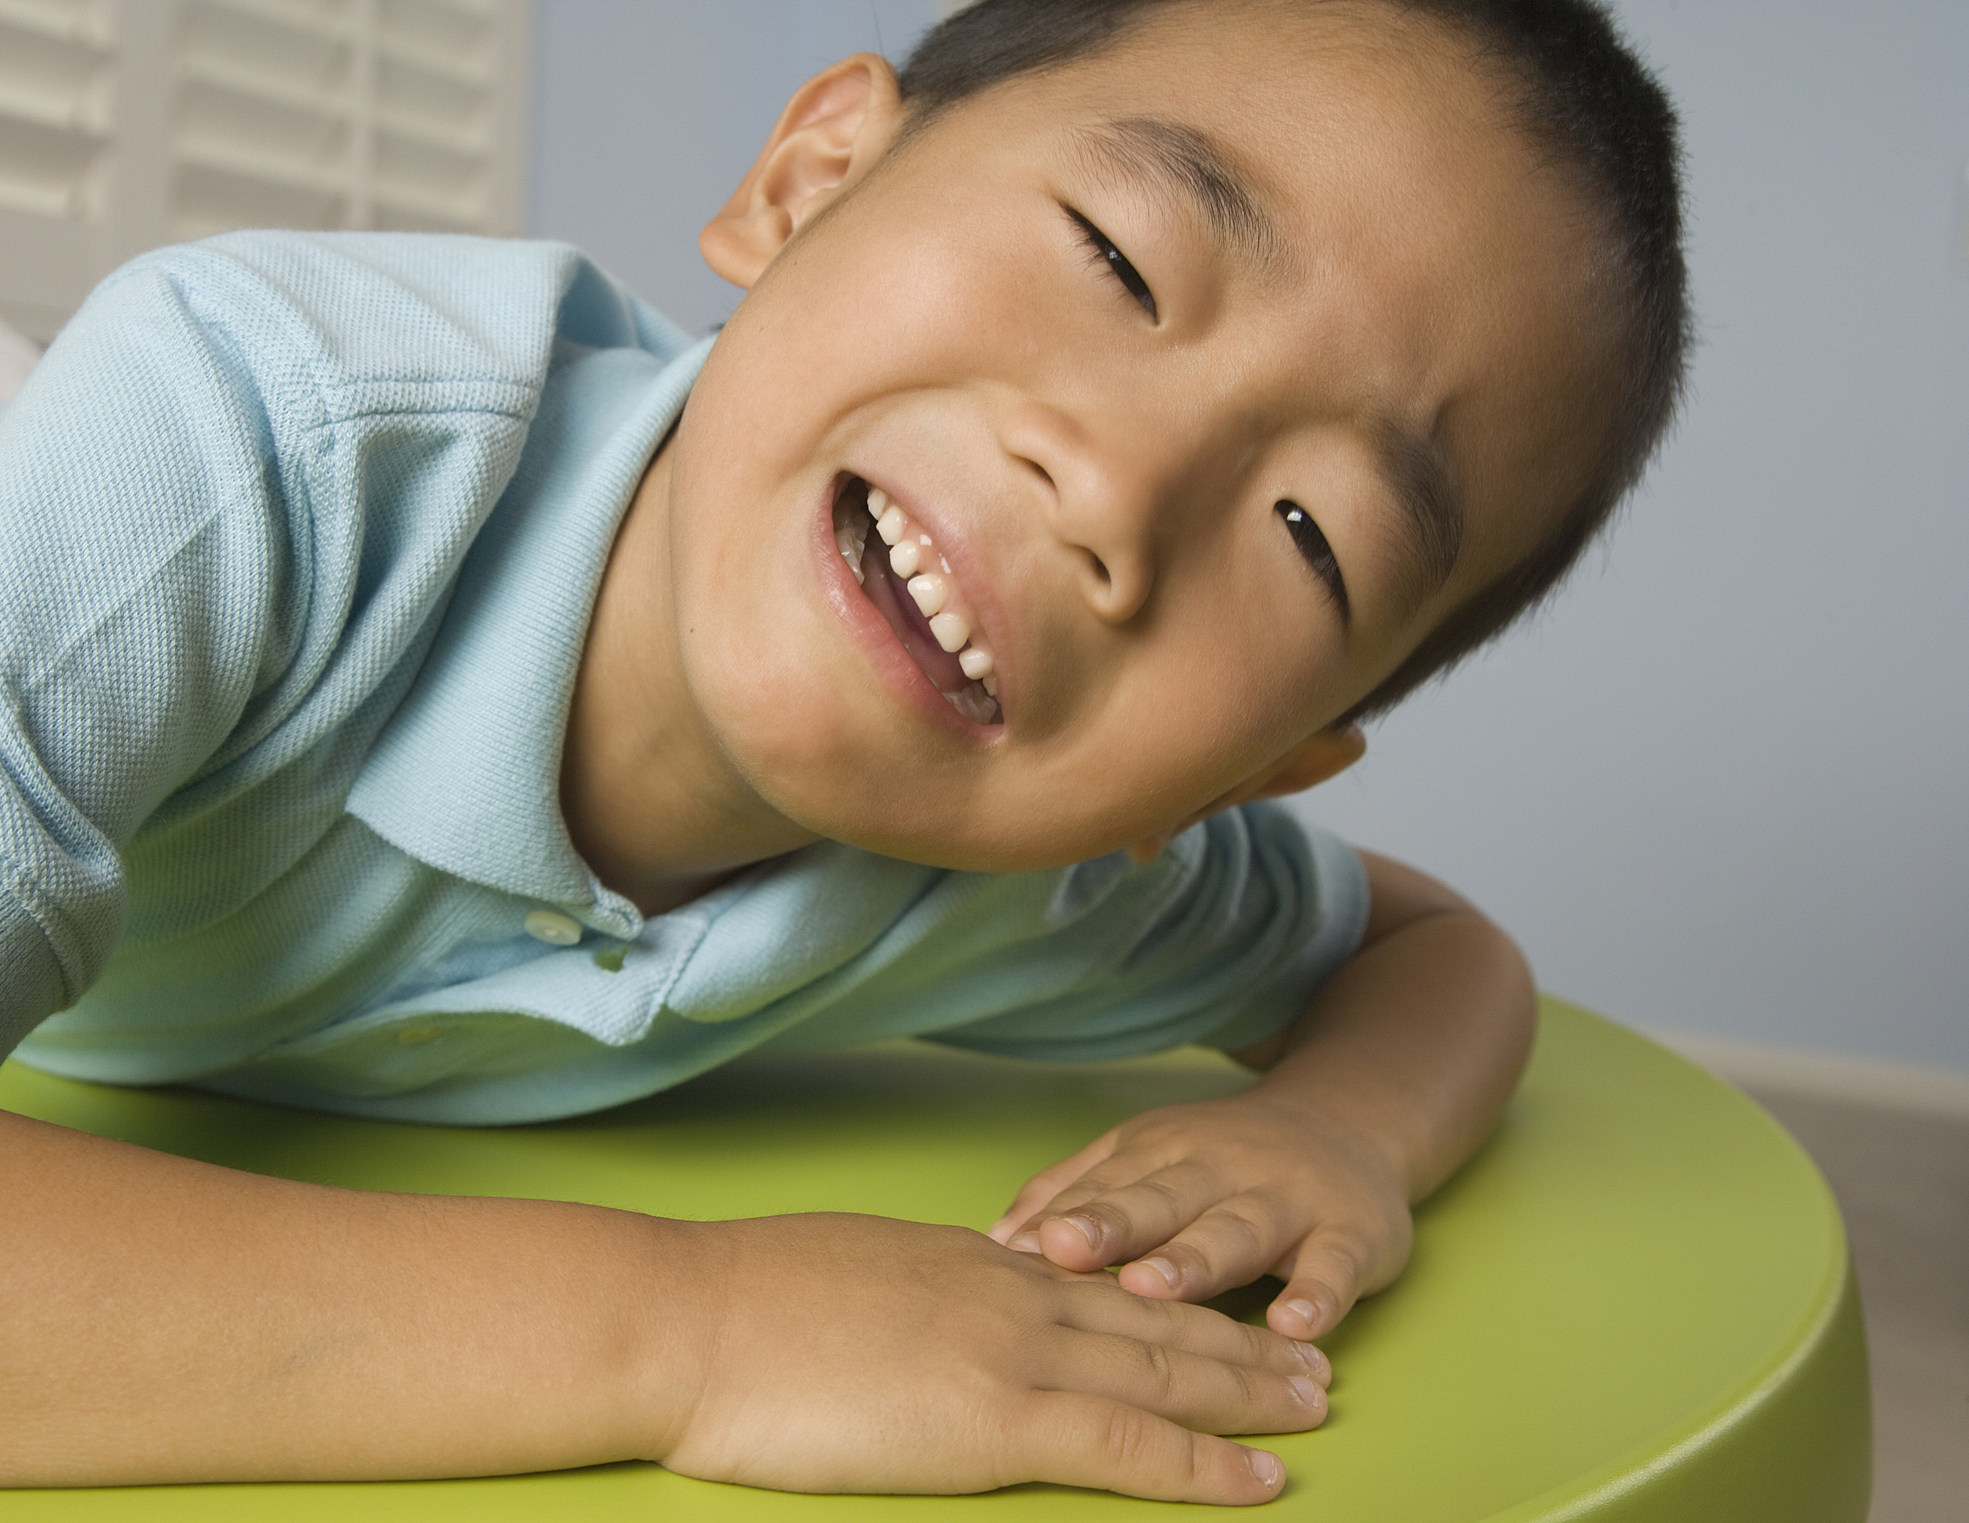 Asian boy crying on table